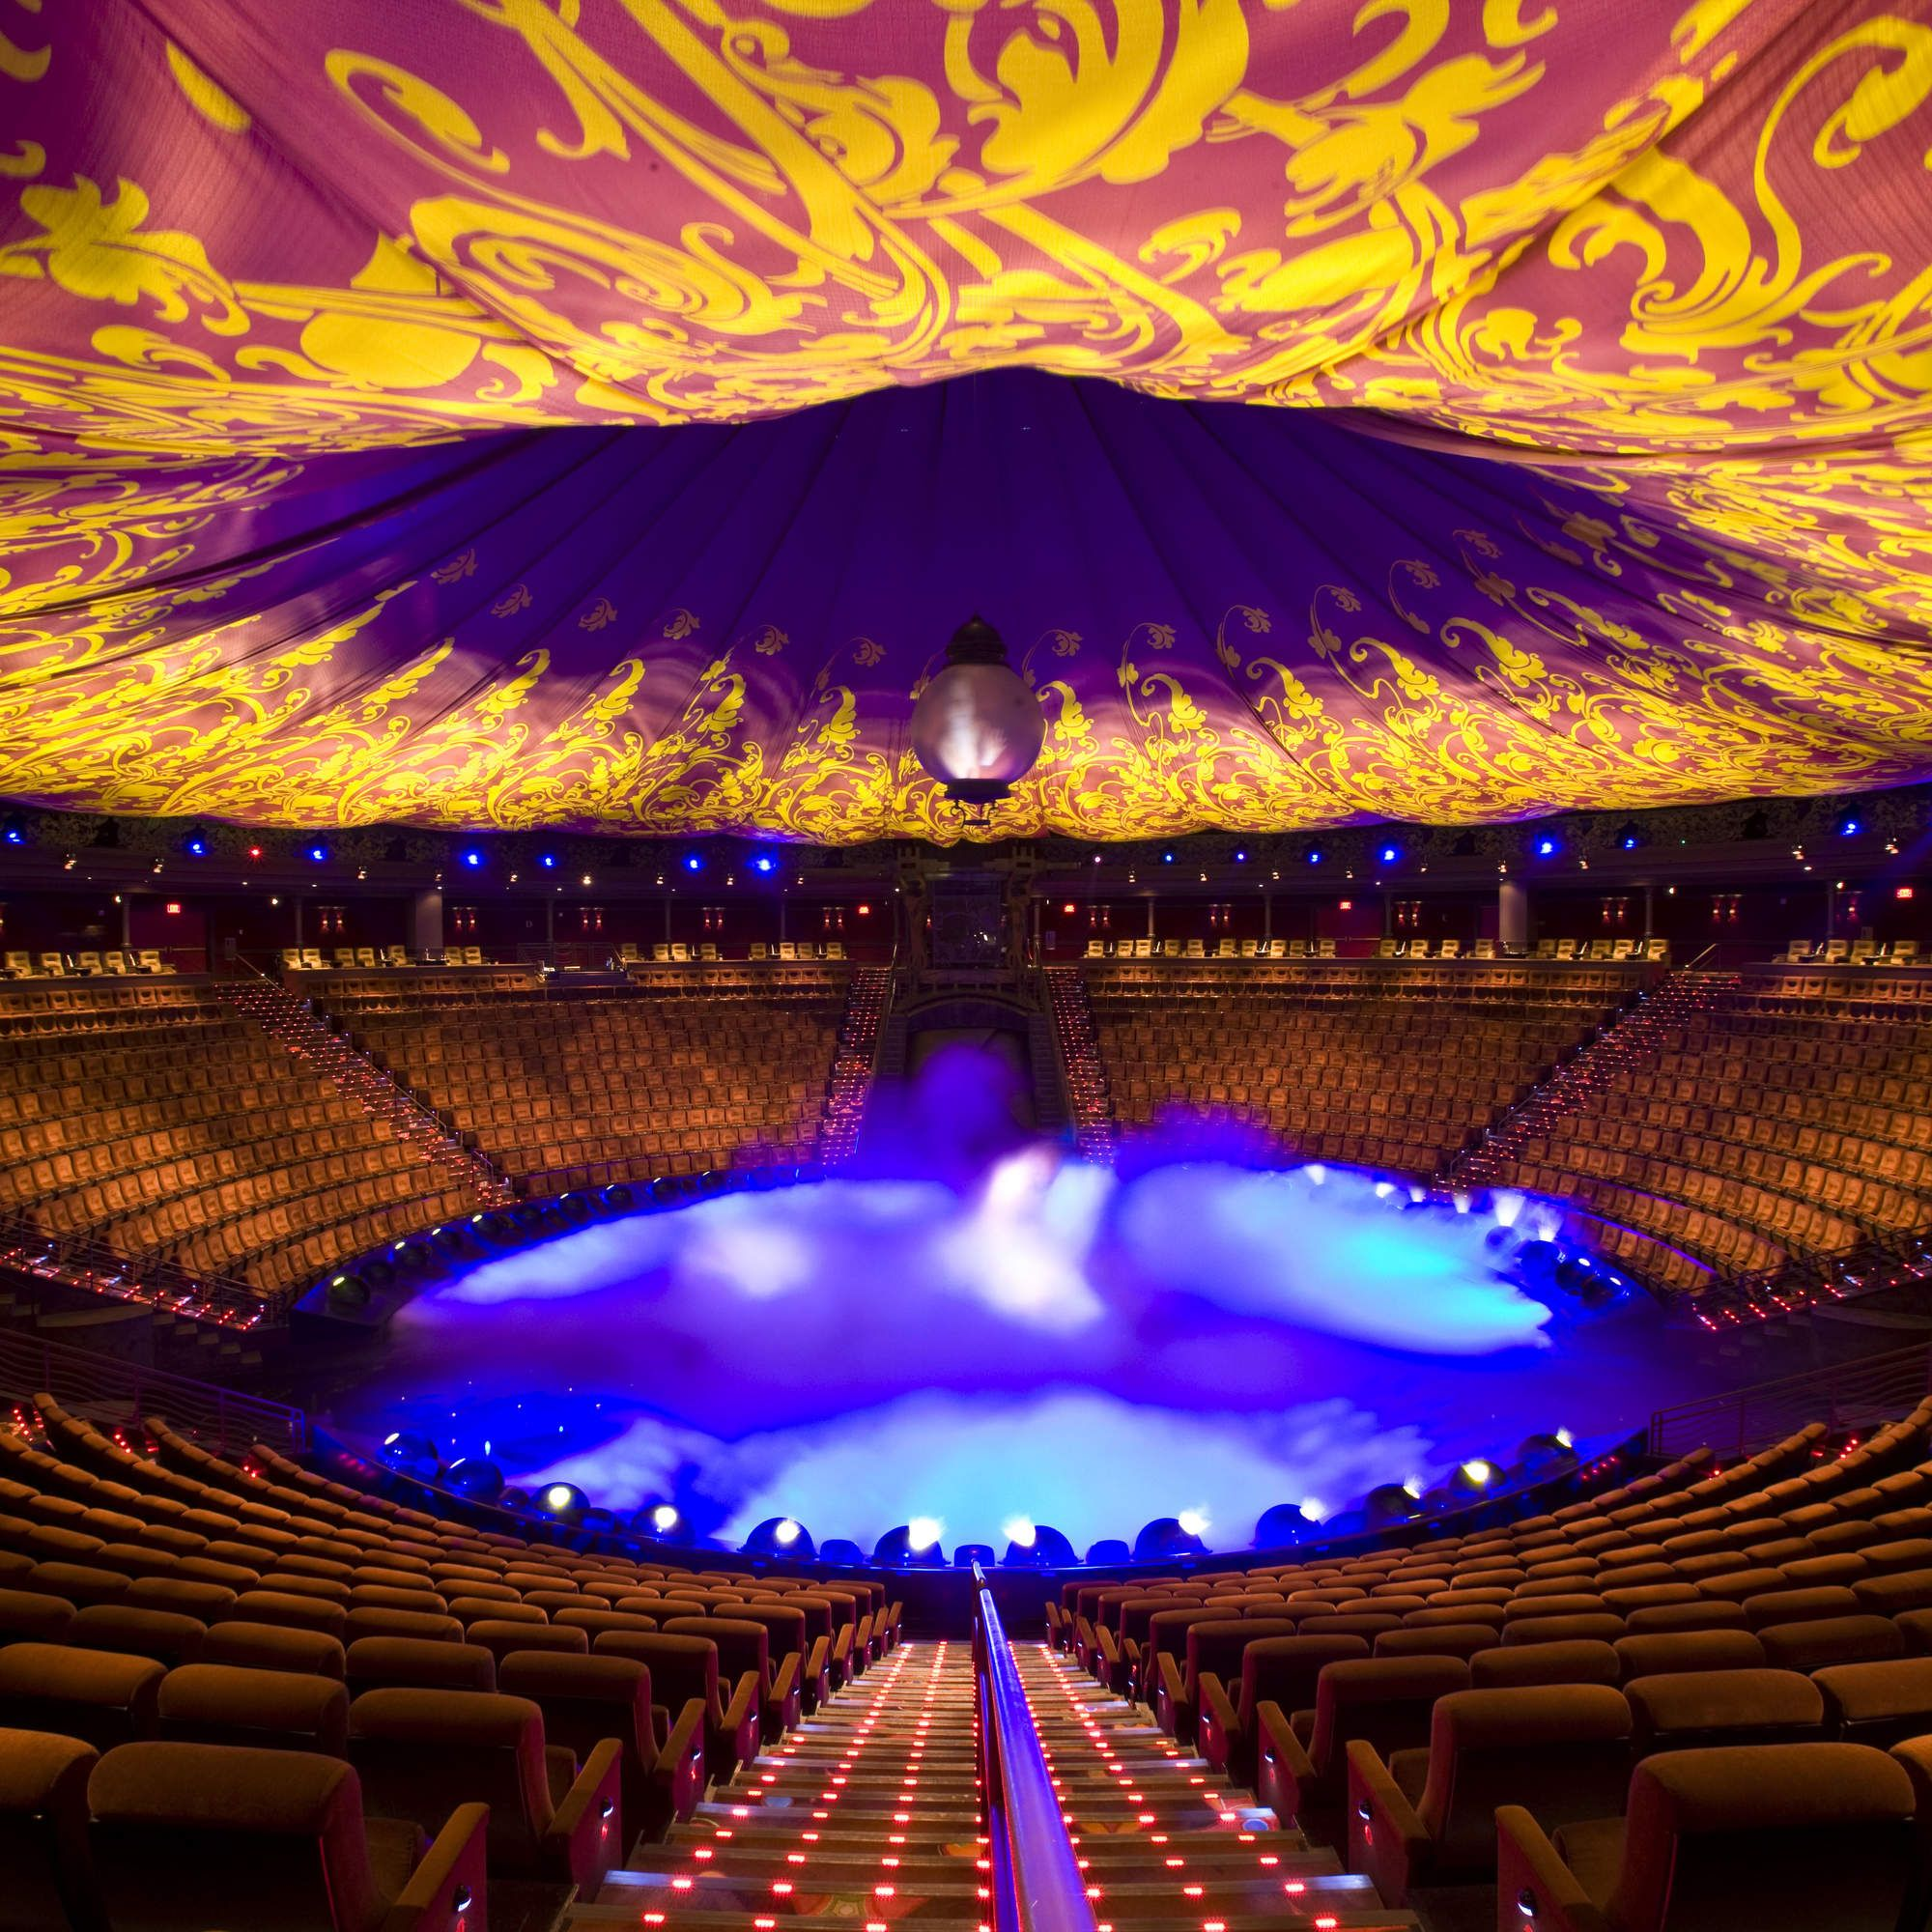 The Best Shows and Musicals in Las Vegas Las vegas shows